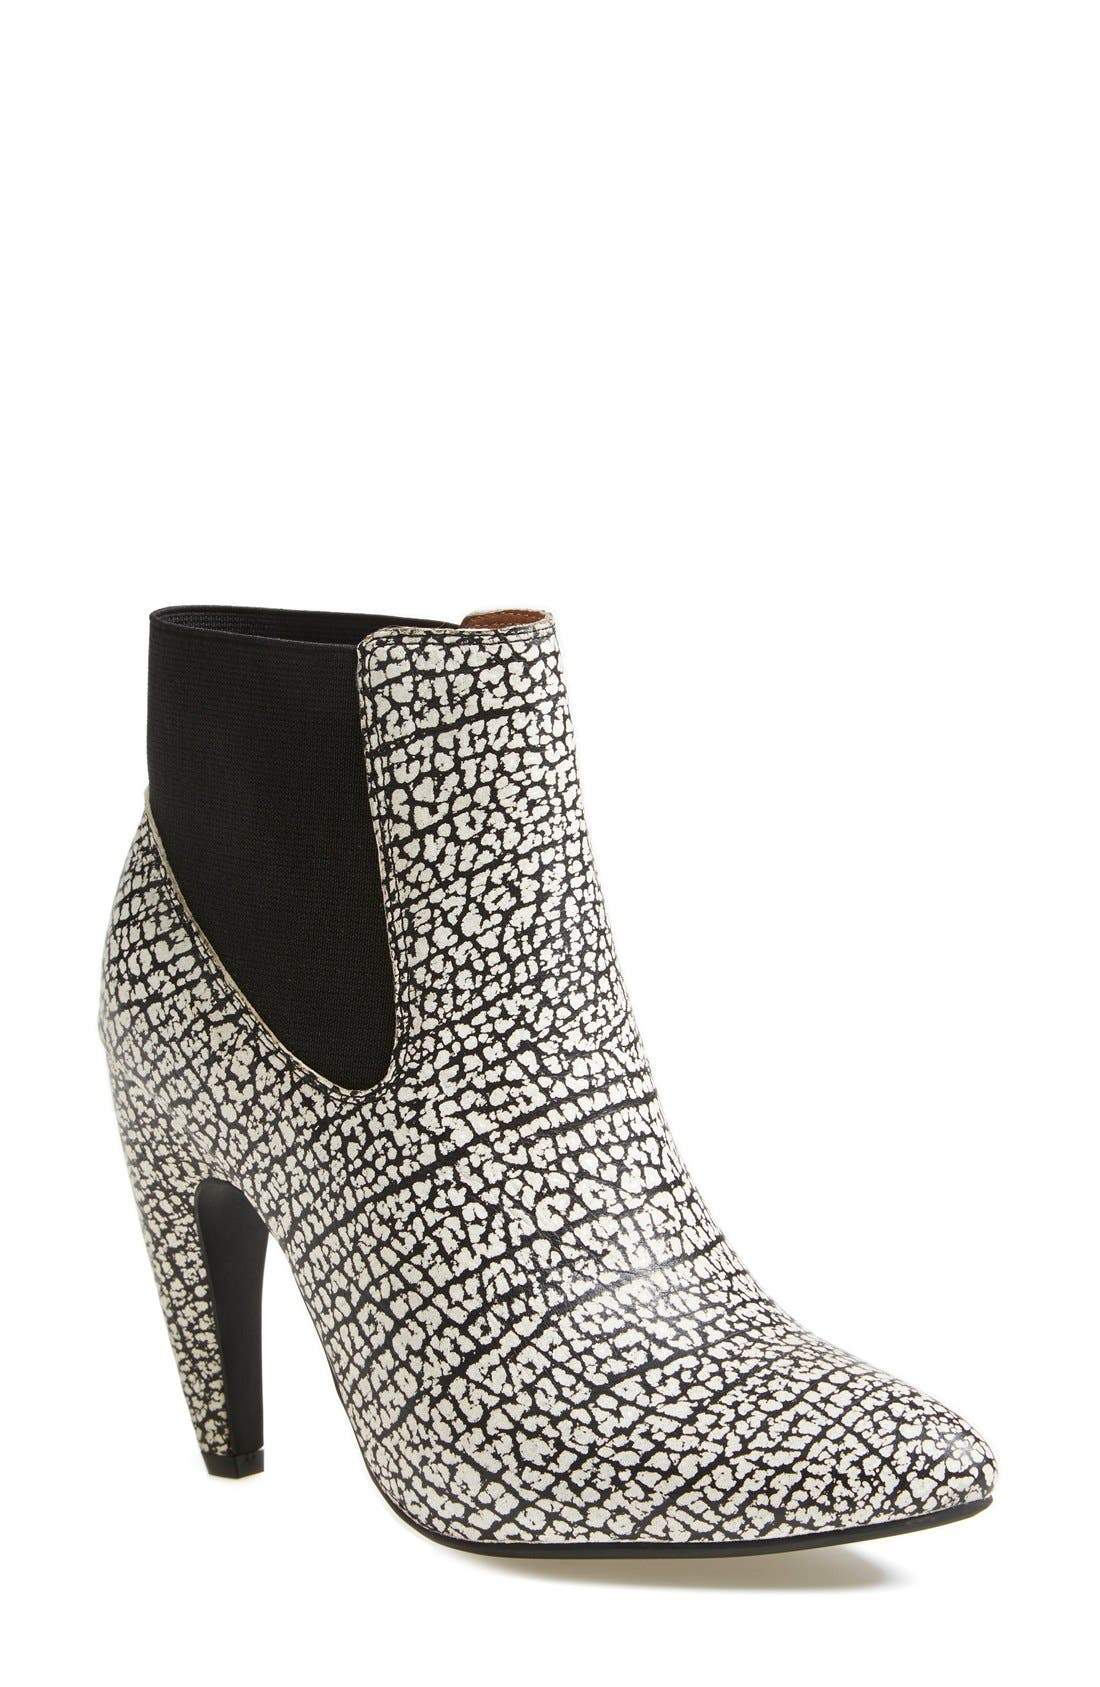 Alternate Image 1 Selected - Jeffrey Campbell 'Calzino' Suede Bootie (Women)